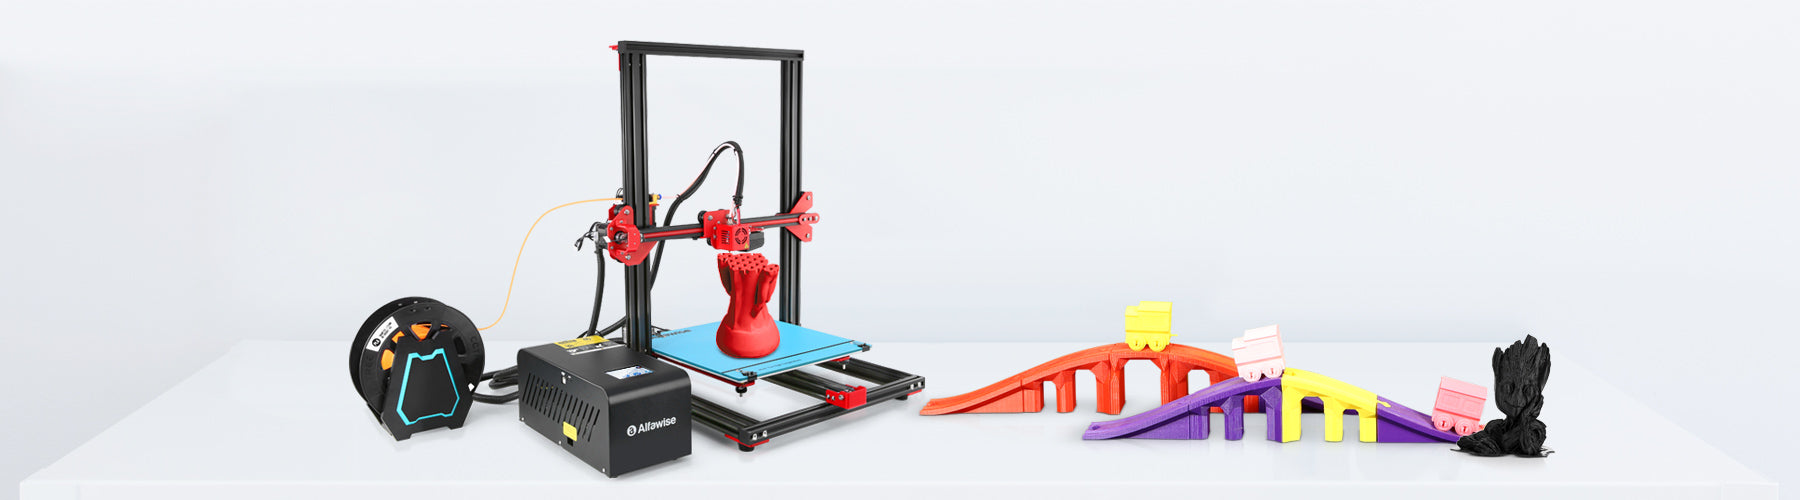 Enjoy 100% Completion Rate on Every Print